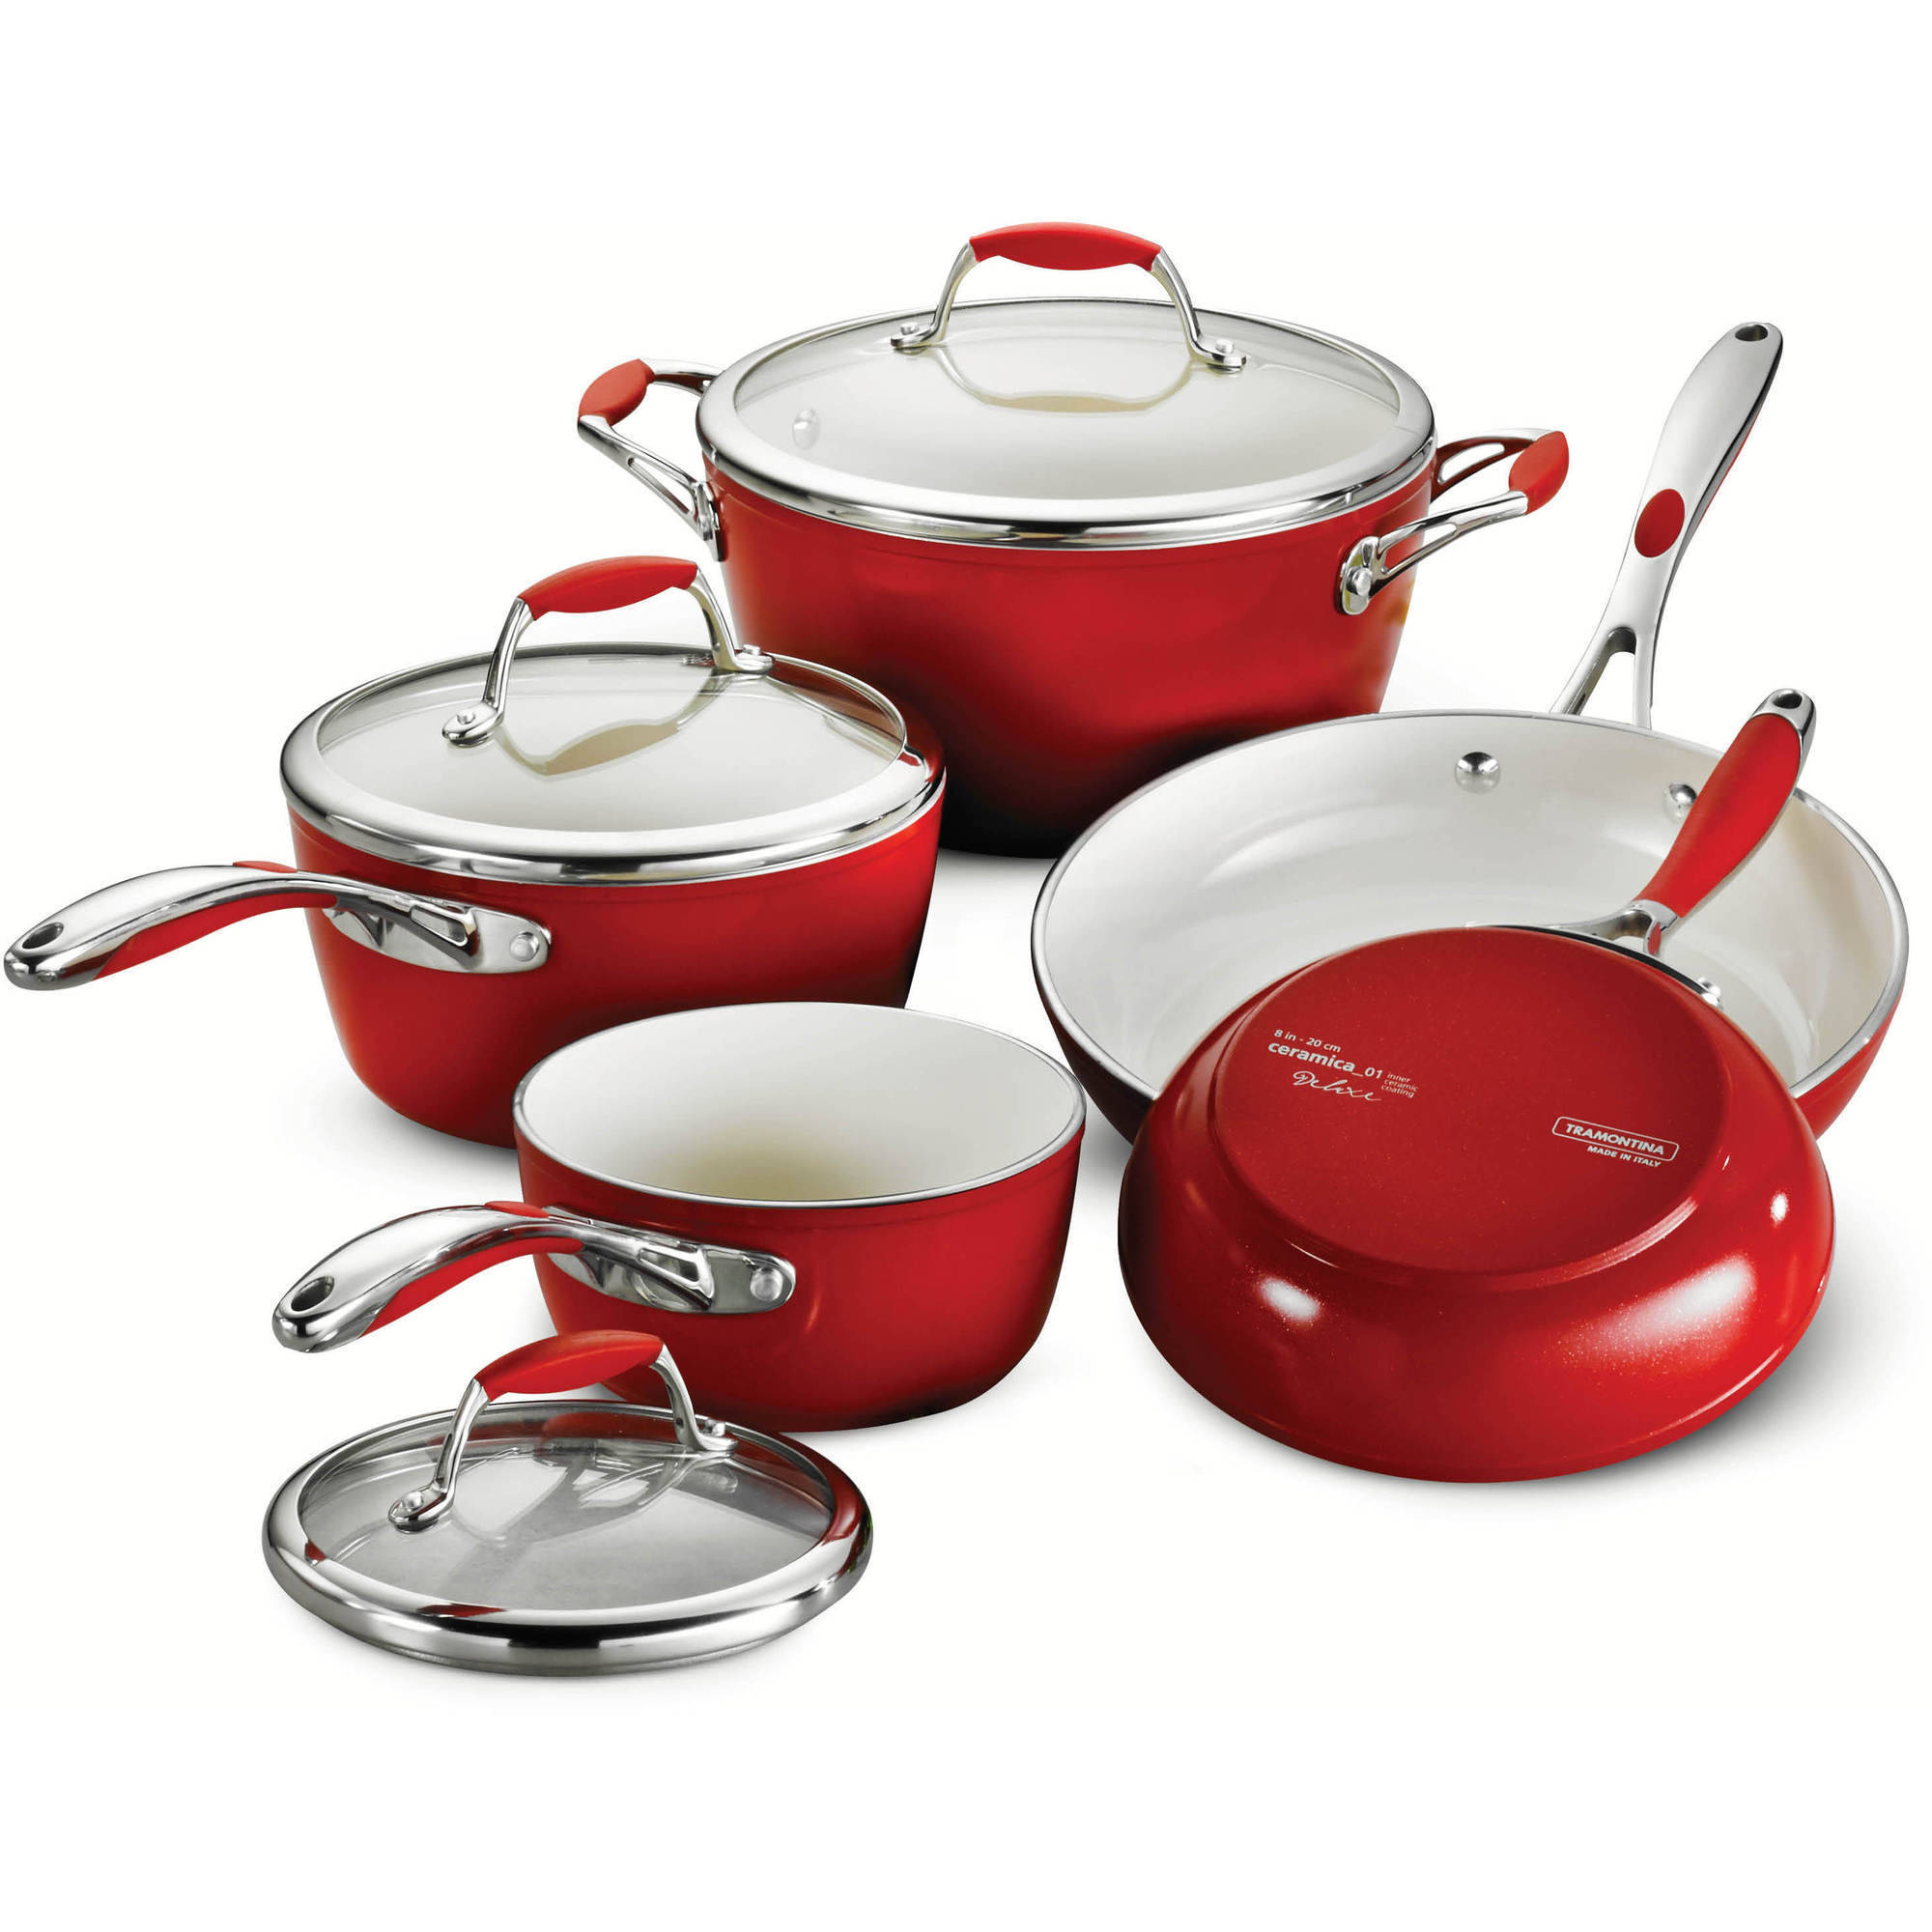 Tramontina Gourmet Ceramica_01 Deluxe 8-Piece Cookware Set, Red by Tramontina USA Inc.